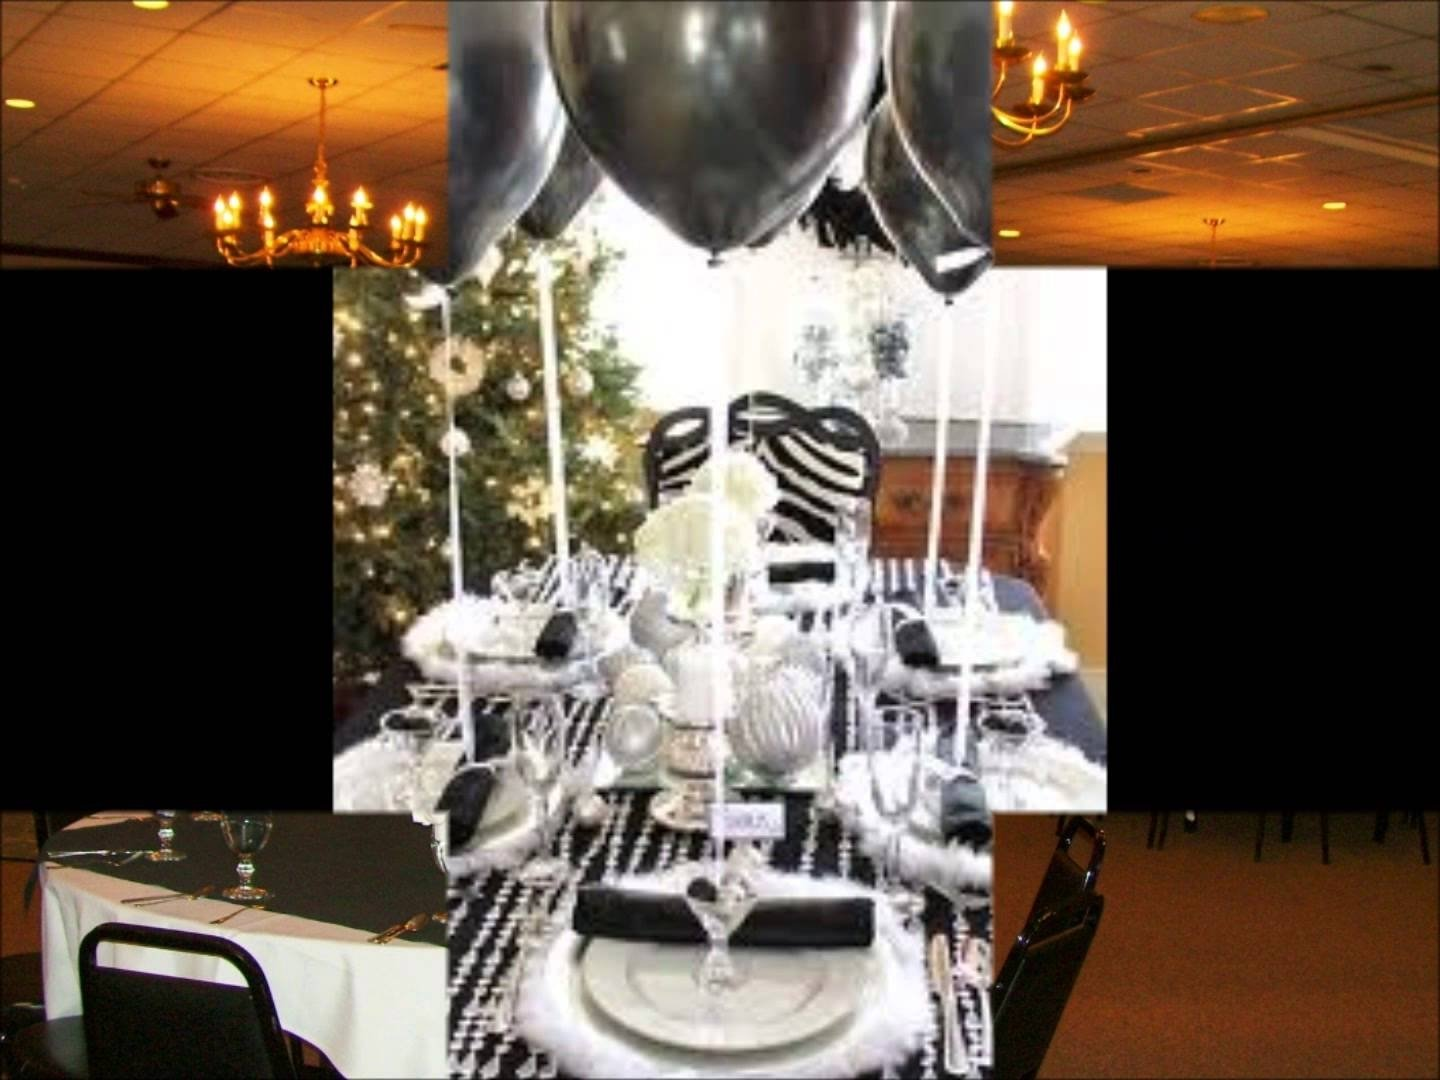 10 Stunning Male 40Th Birthday Party Ideas 40th birthday party ideas suppliesthemesdecorations and favors 8 2020